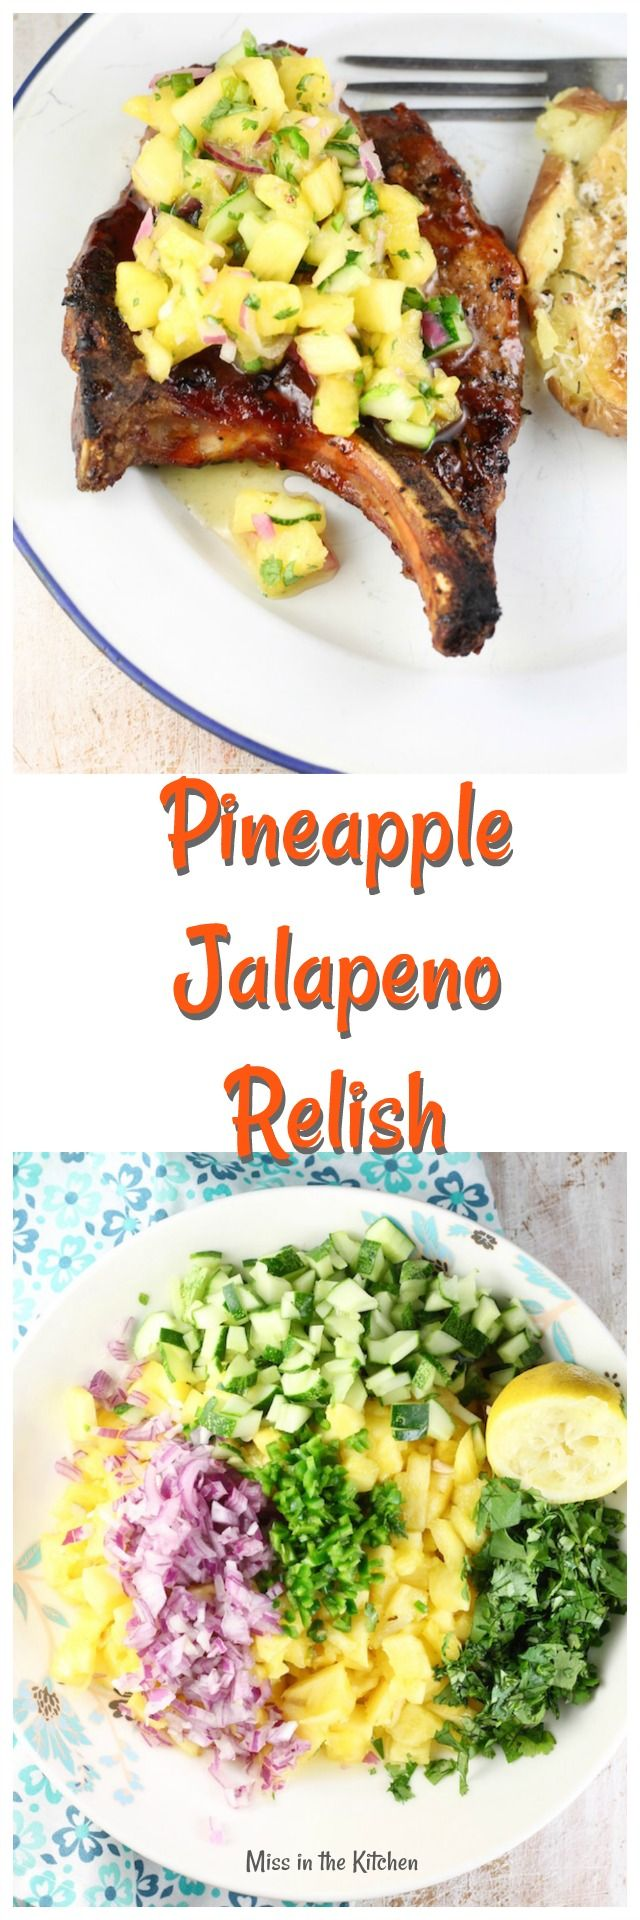 Pineapple Jalapeno Relish Recipe is a great addition to dinners on the grill this summer! Fresh, bright and so delicious from MissintheKitchen.com